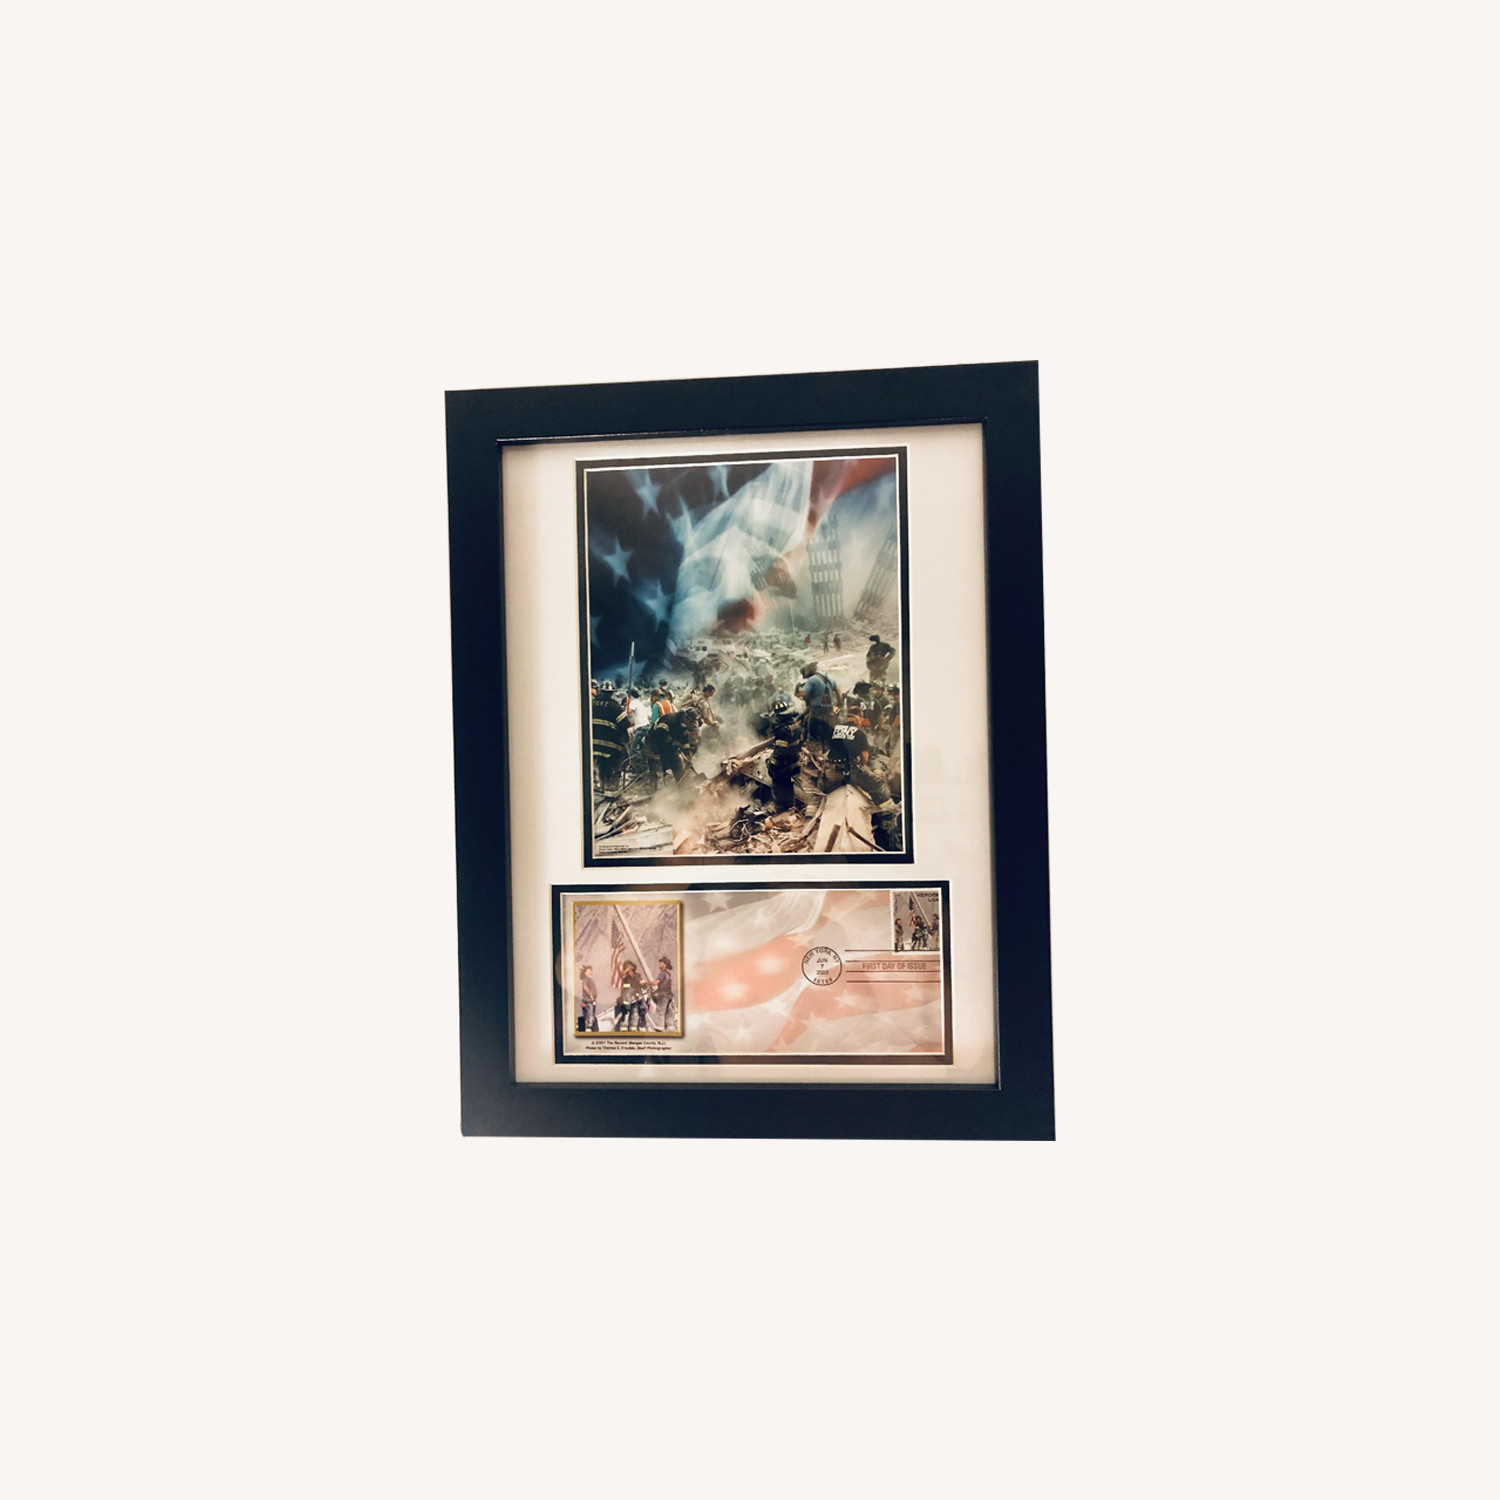 Framed Historic Photos of 9/11 w/ 1st Day Heroes Stamp